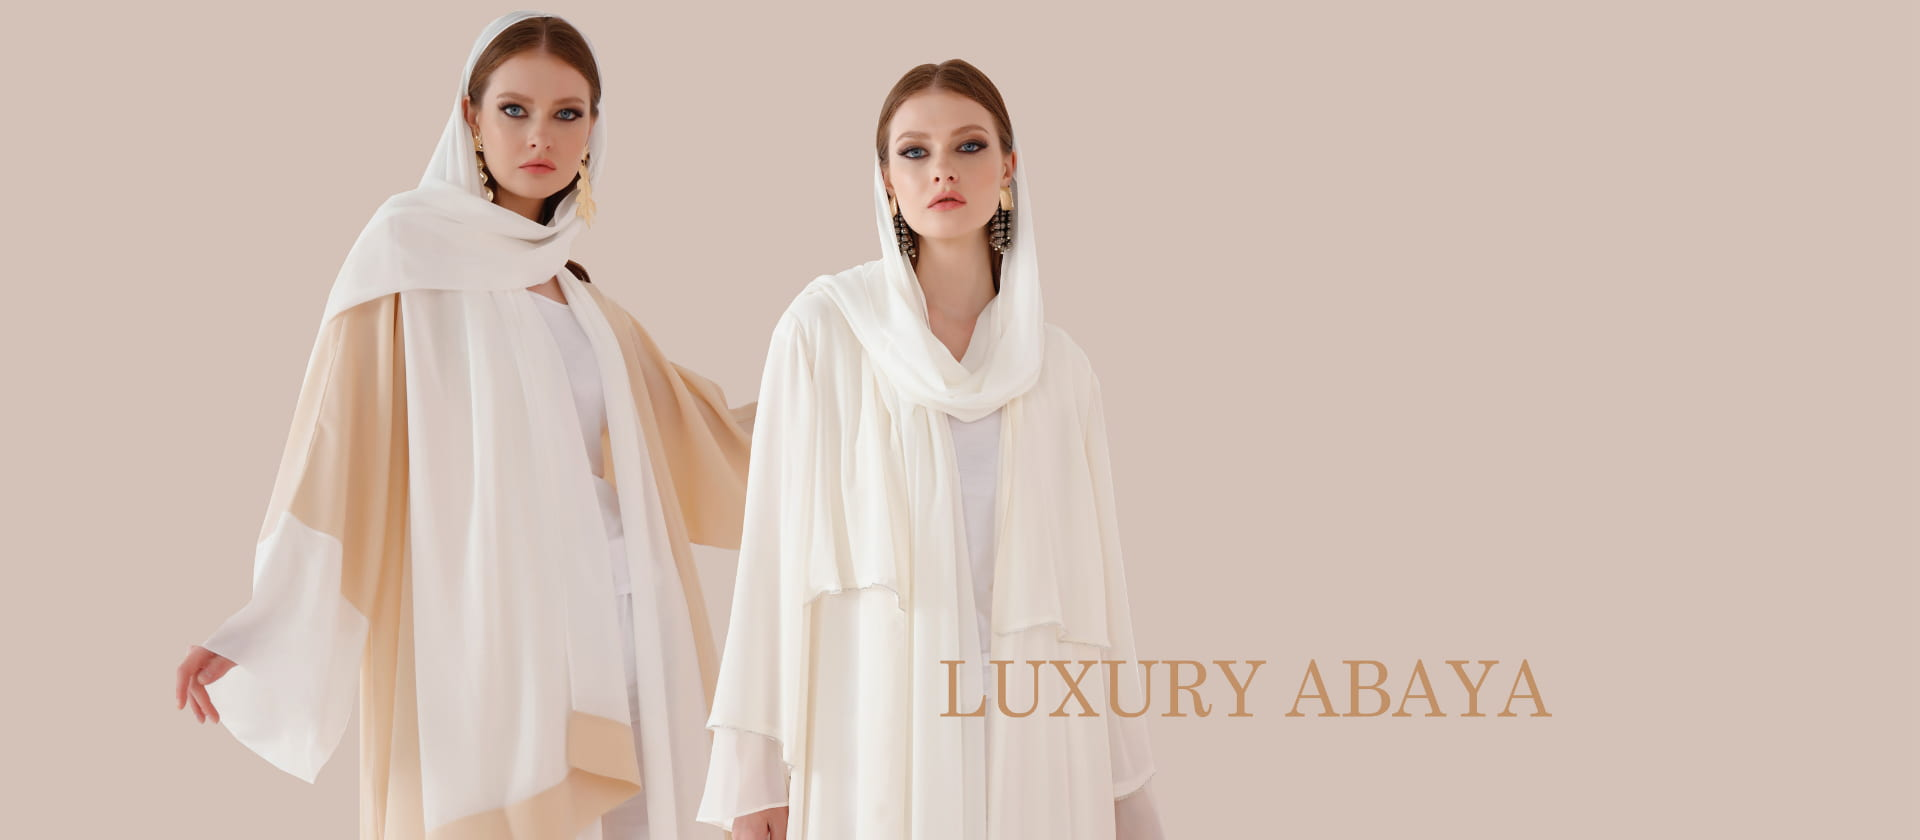 <ly-as-8373571>Accessories   Islamic Clothing</ly-as-8373571>